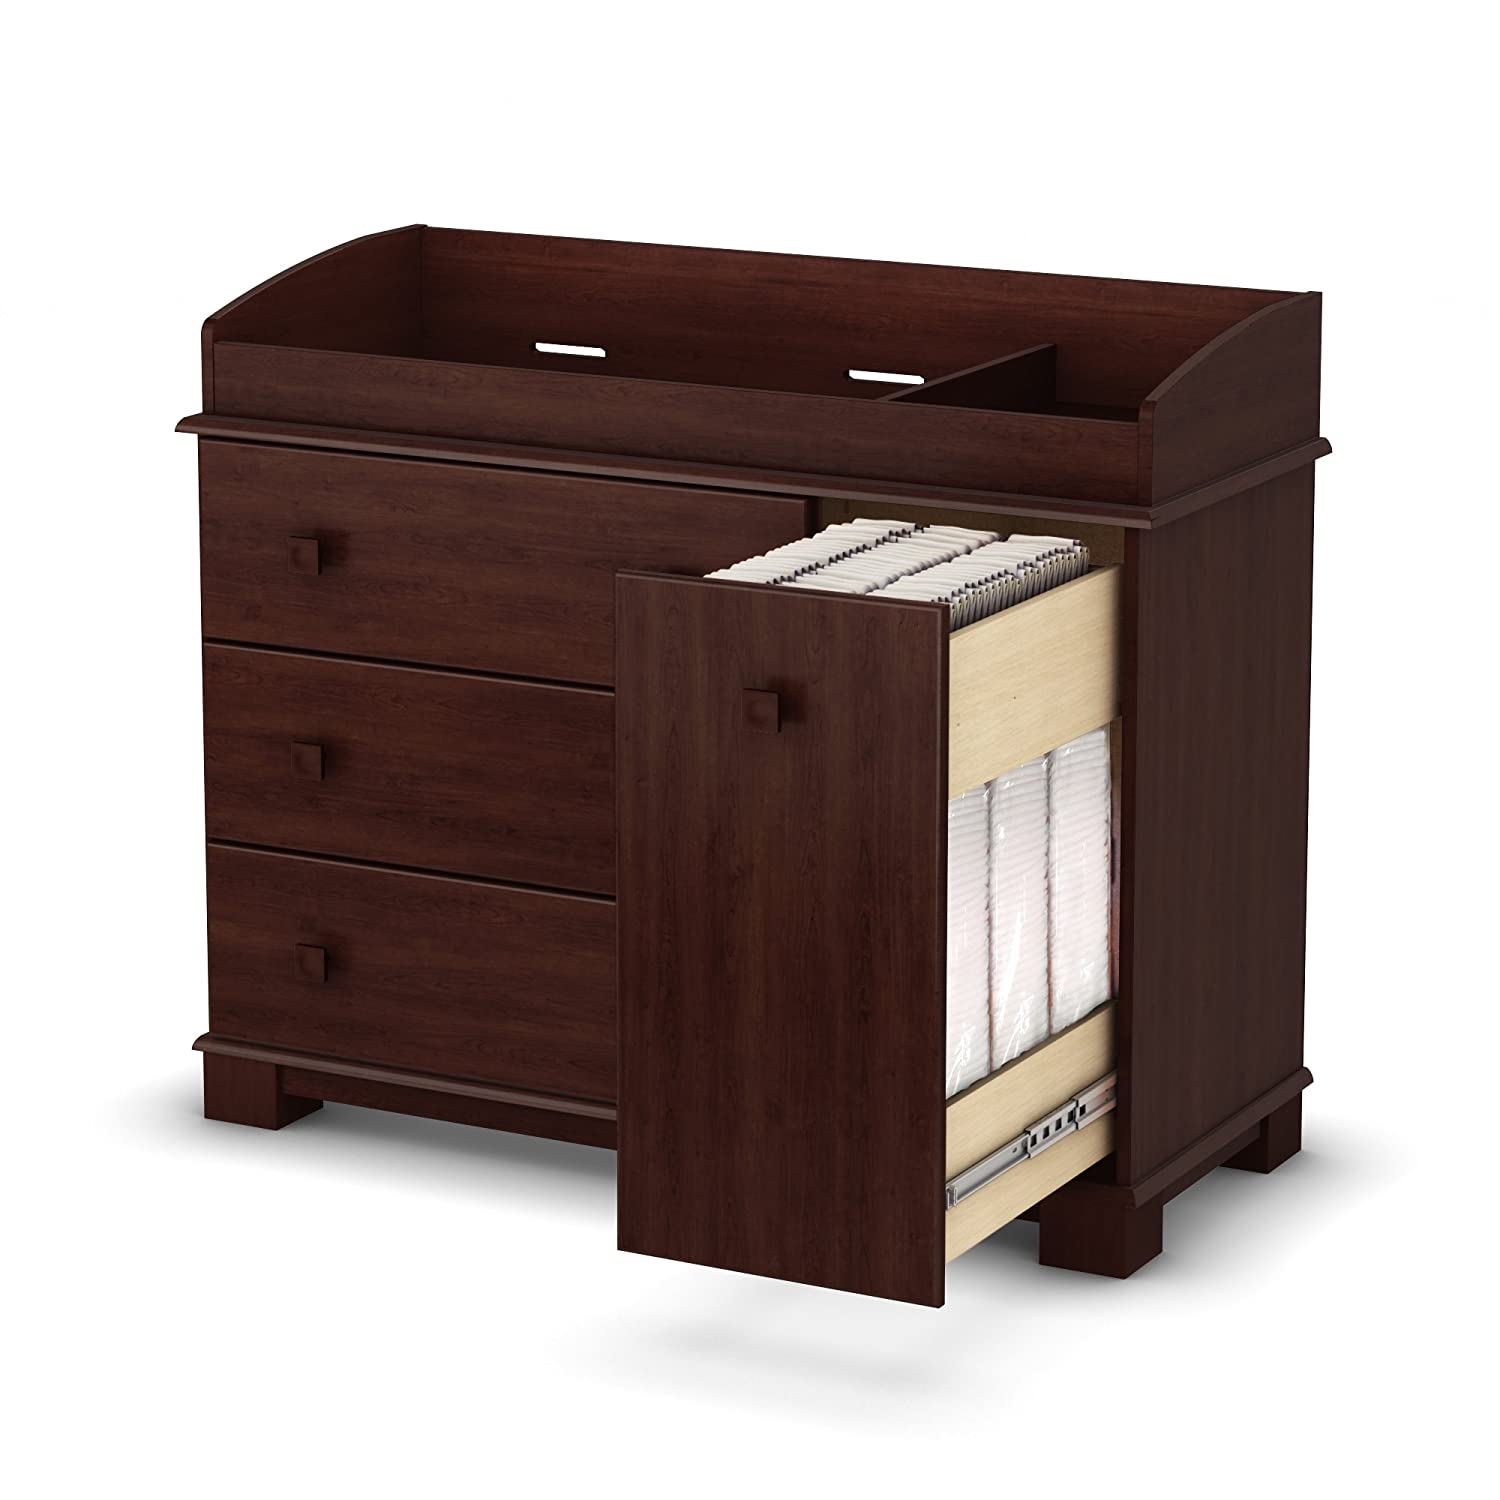 Exceptional Amazon.com : South Shore Precious Collection Changing Table, Royal Cherry :  South Shore Precious Colletion Changing Table Royal Cherry : Kitchen U0026  Dining